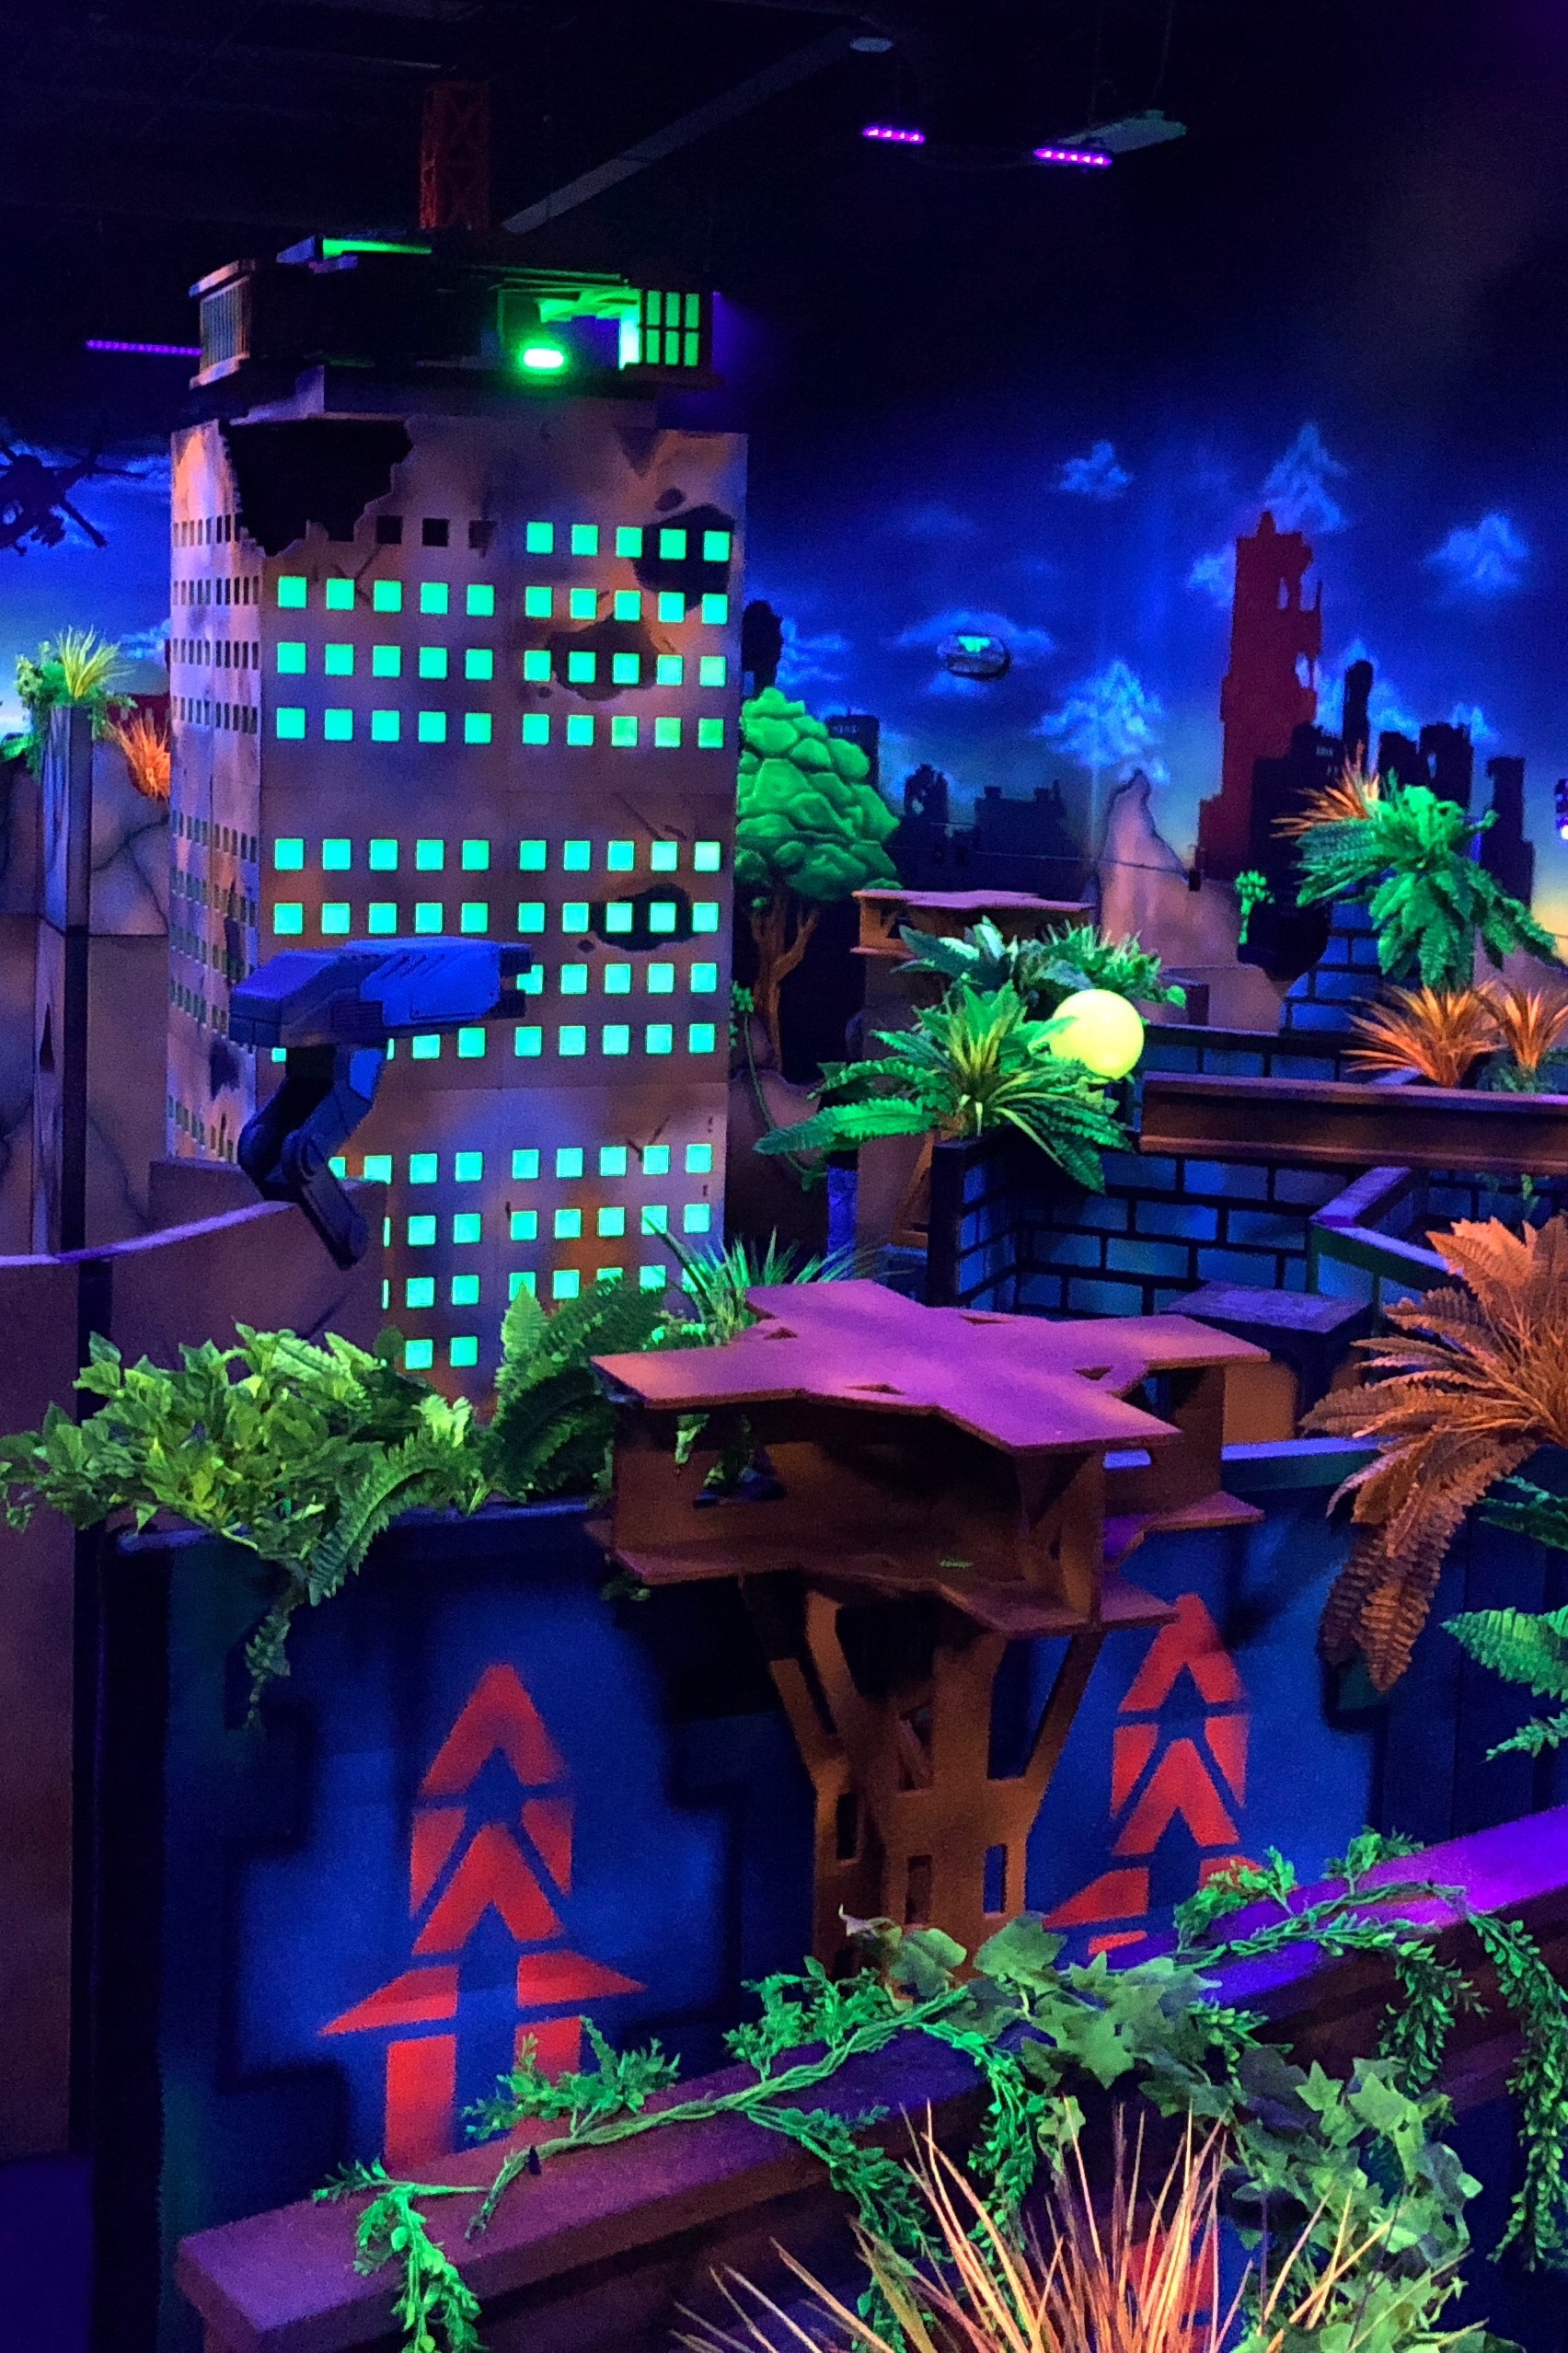 Laser Tag - An immersive experience that will bring you through a subway station to an apocalyptic cityscape. Battle your friends in the ruins of a skyscraper, a crashed Humvee, and walls overgrown with luminous flora.$5.00/game